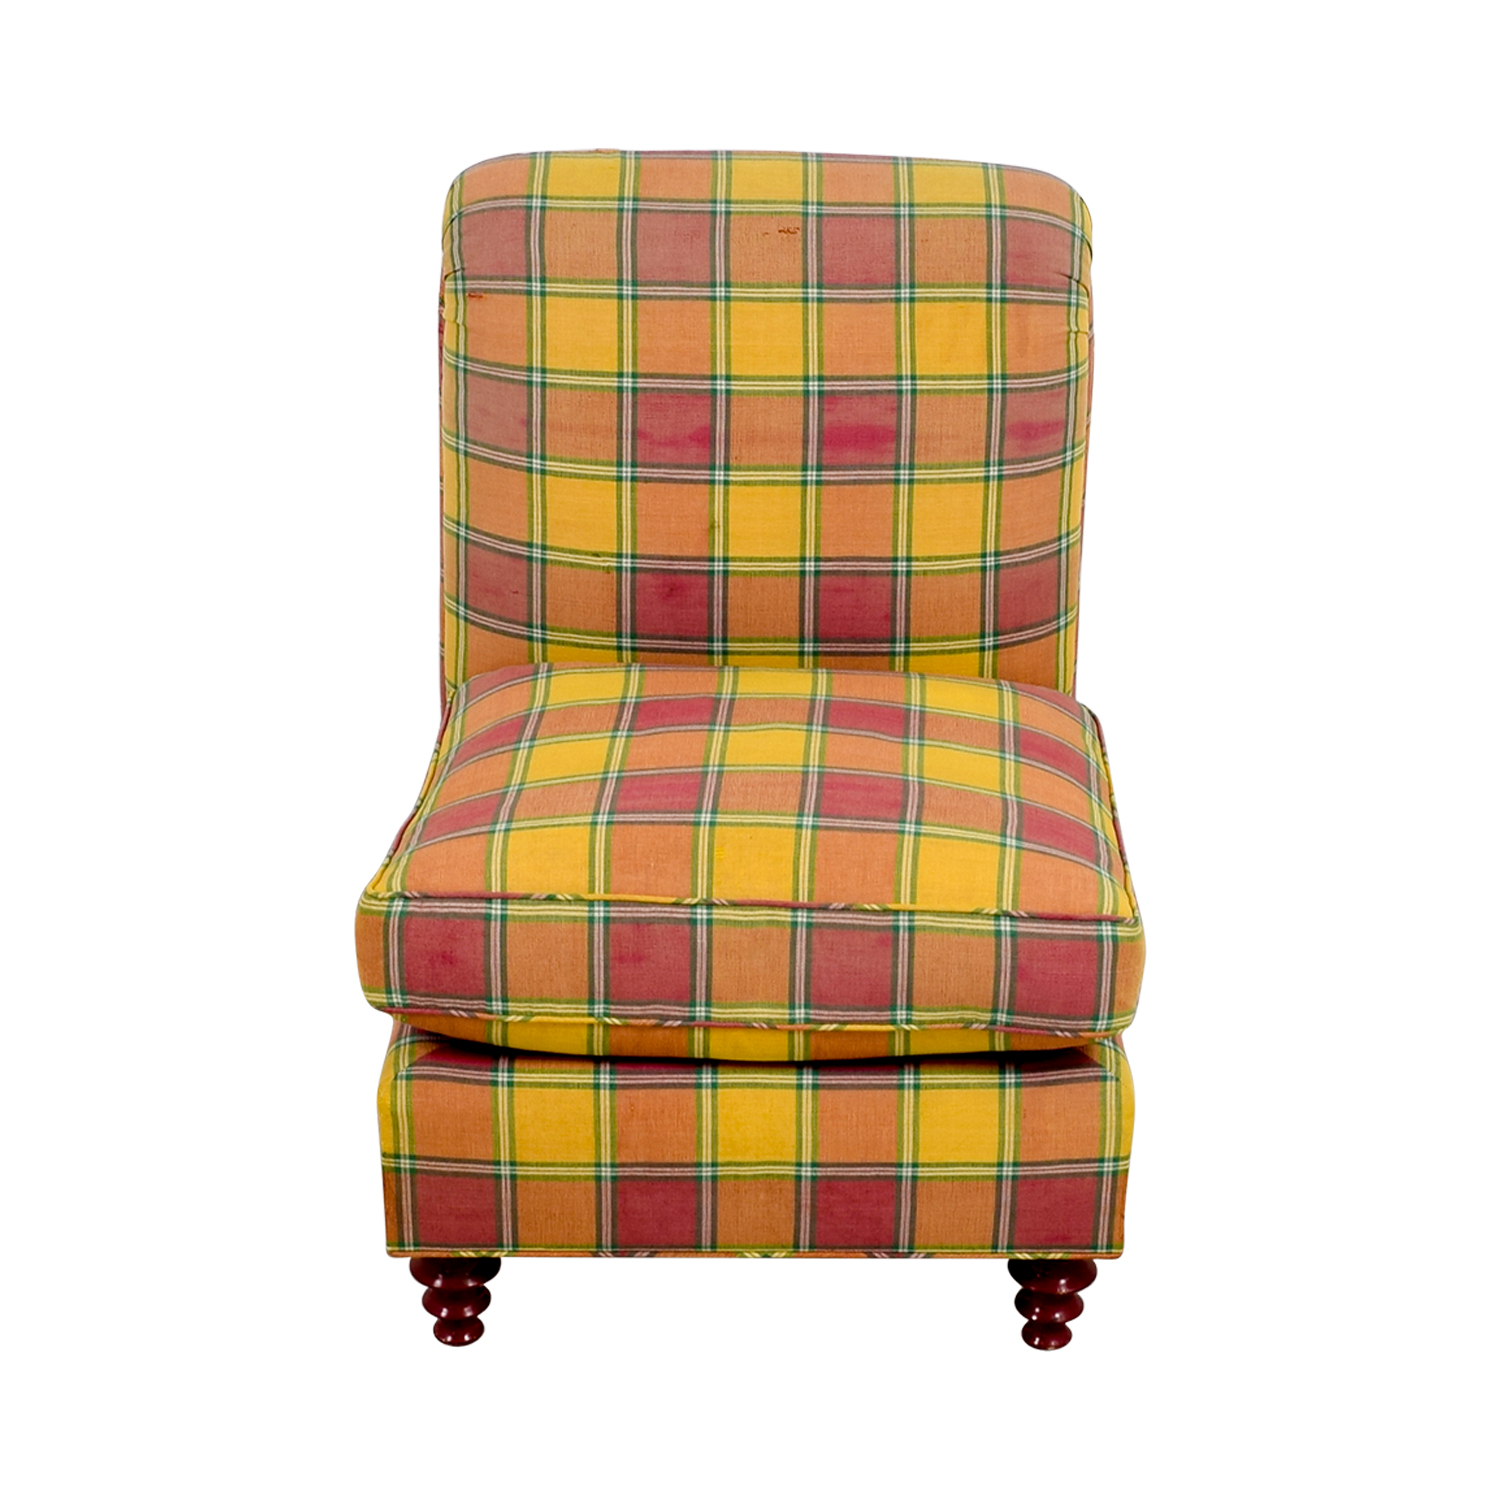 43% OFF Furniture Masters Furniture Masters Red and Yellow Plaid